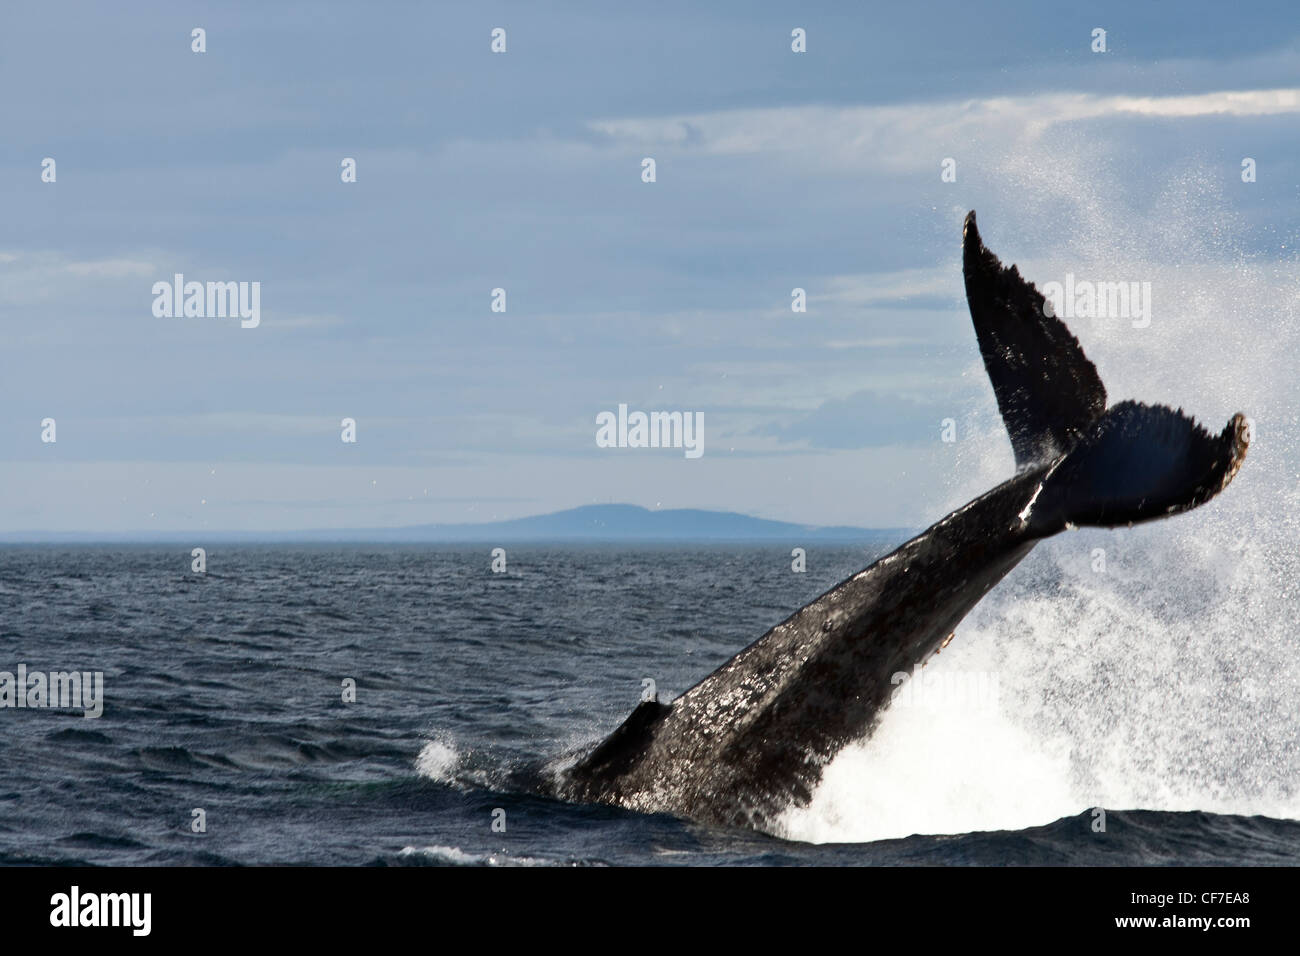 Blue whale diving in St Lawrence at Tadoussac, Quebec, Canada - Stock Image